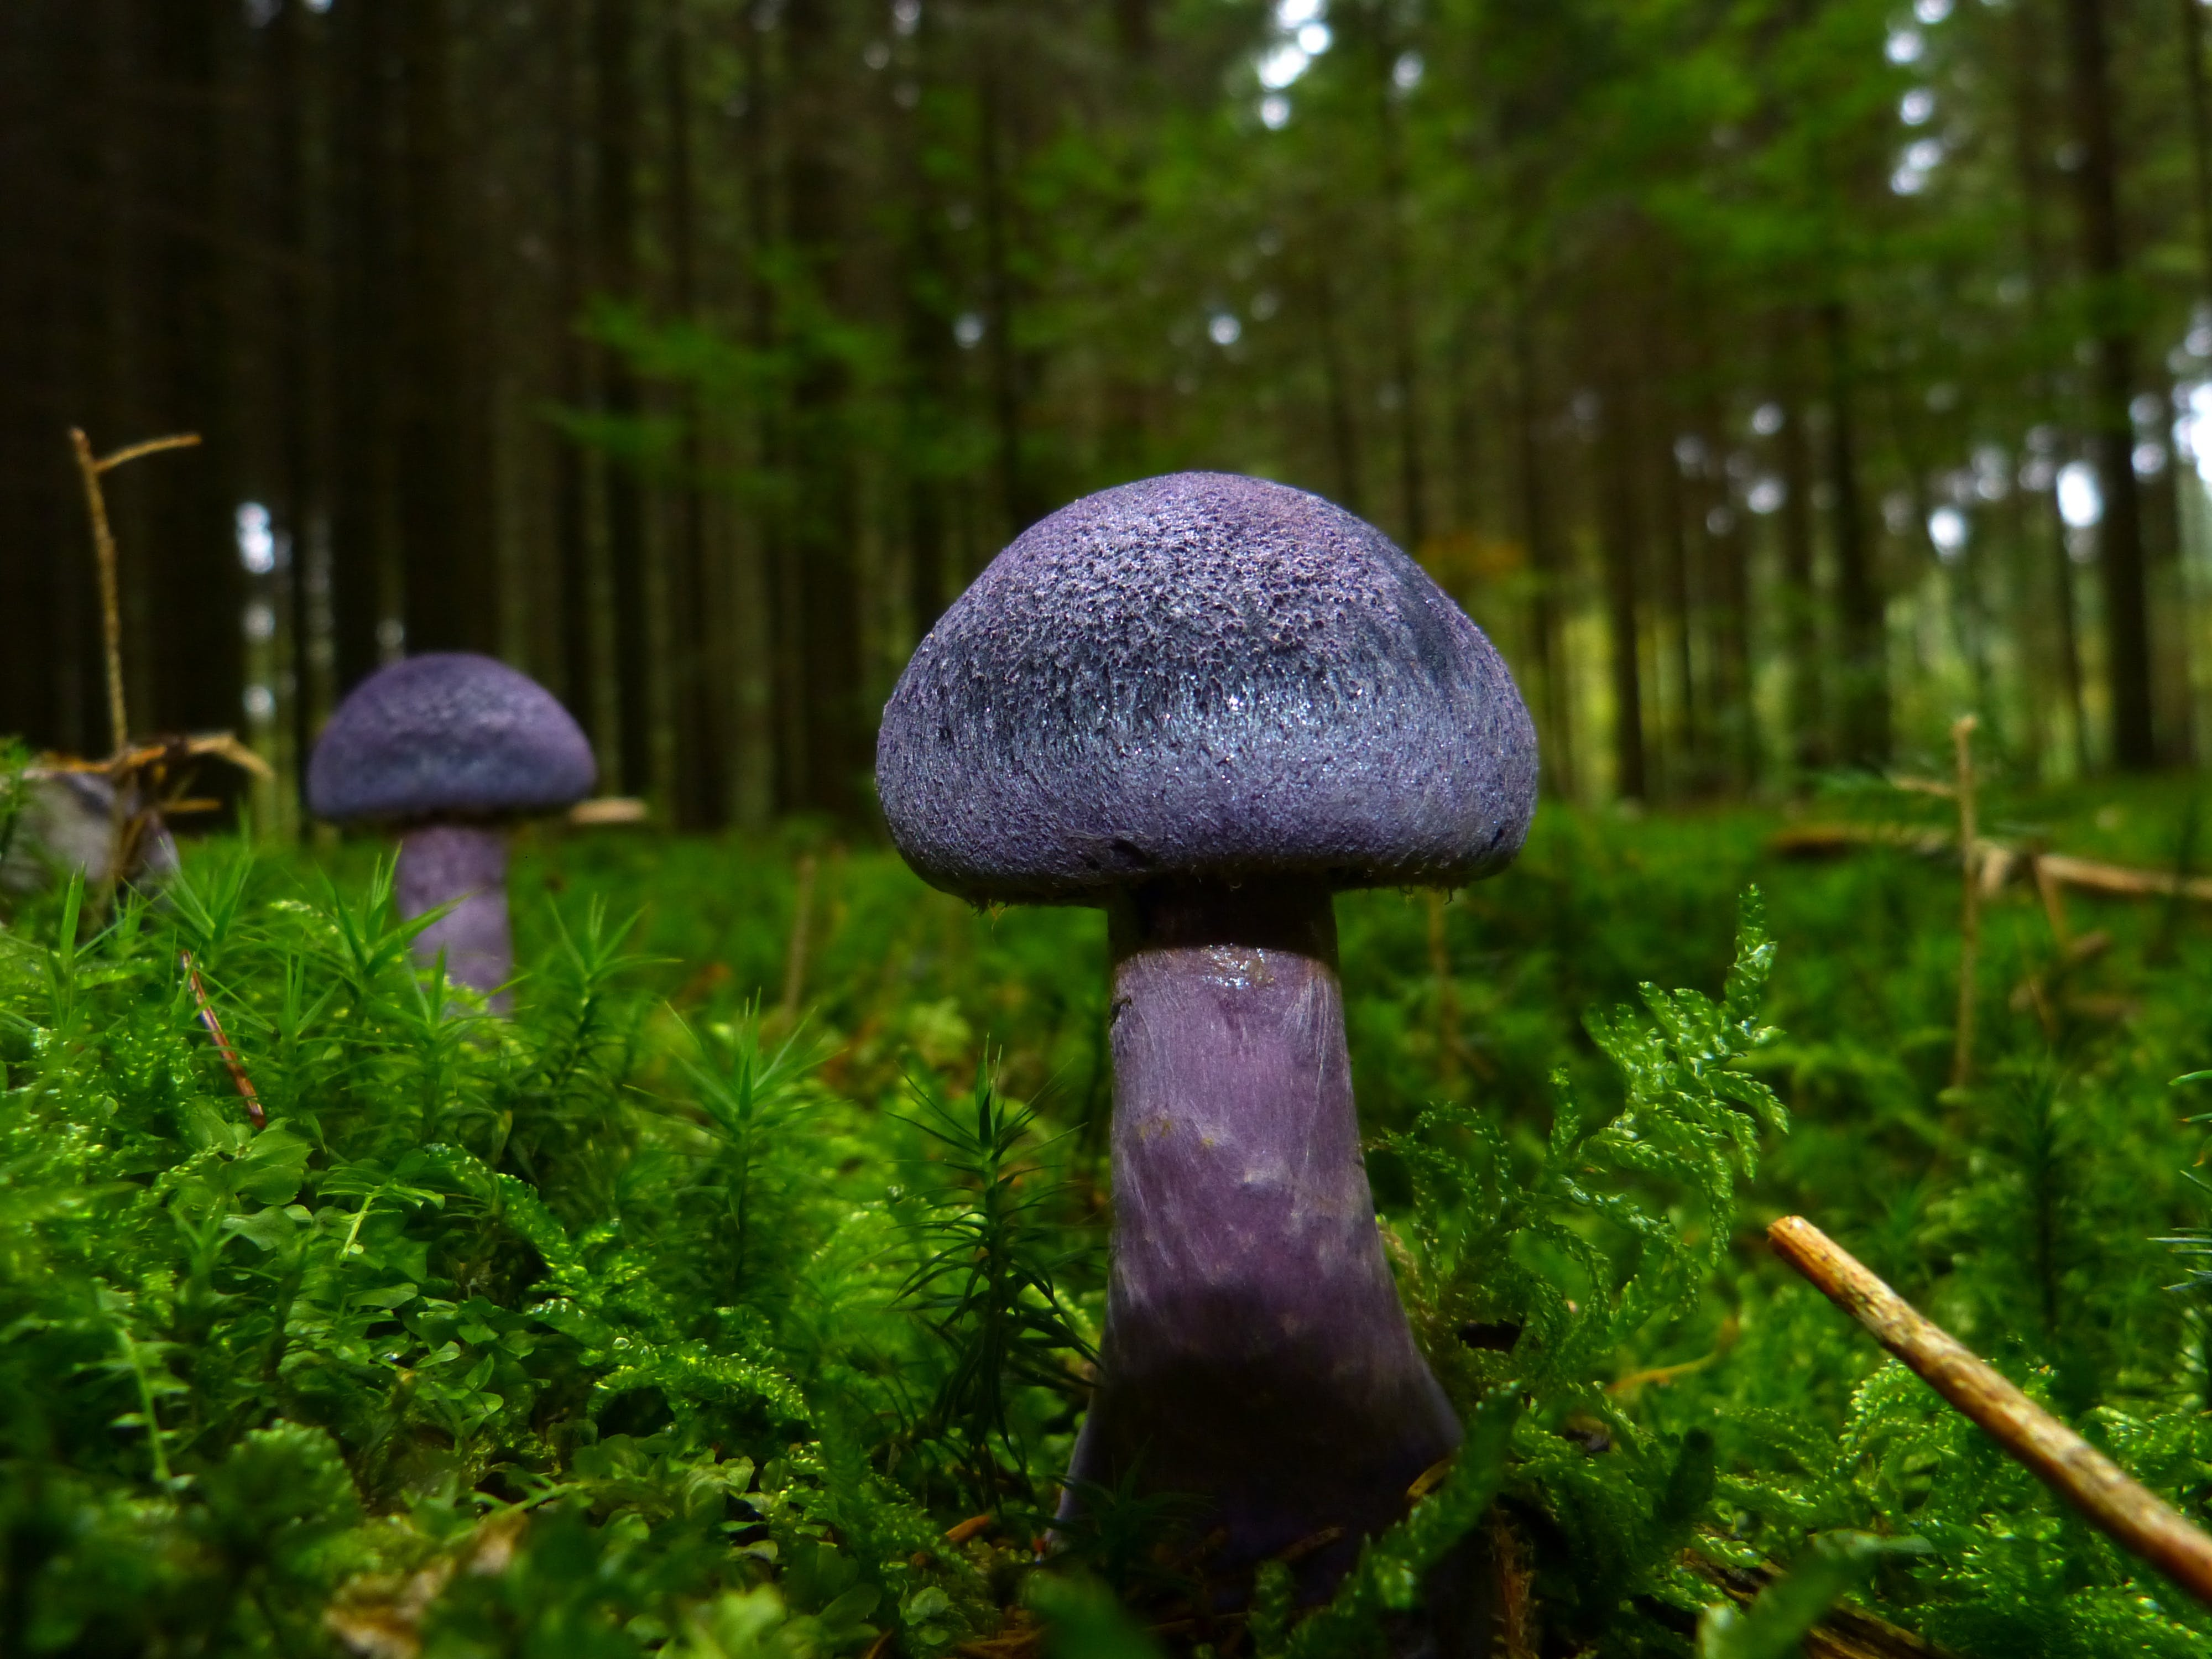 Purple Mushrooms on Green Field